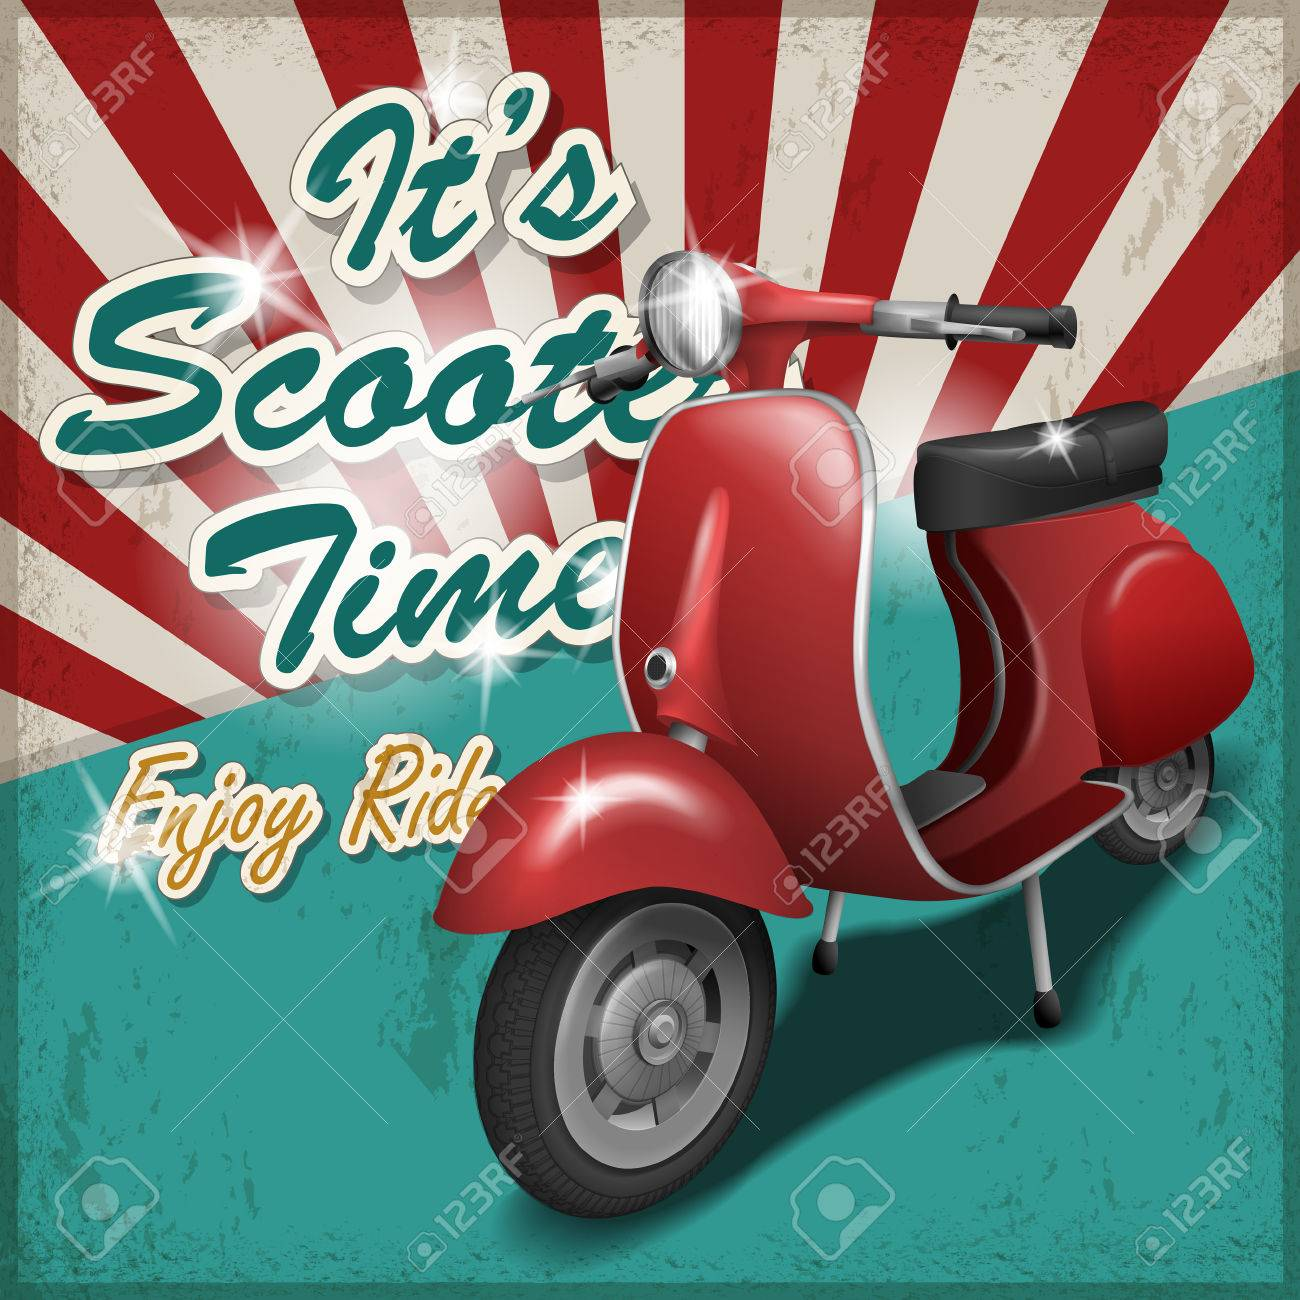 Scooter Travel Concept Poster Design With Retro Background Royalty Free Cliparts Vectors And Stock Illustration Image 42444366